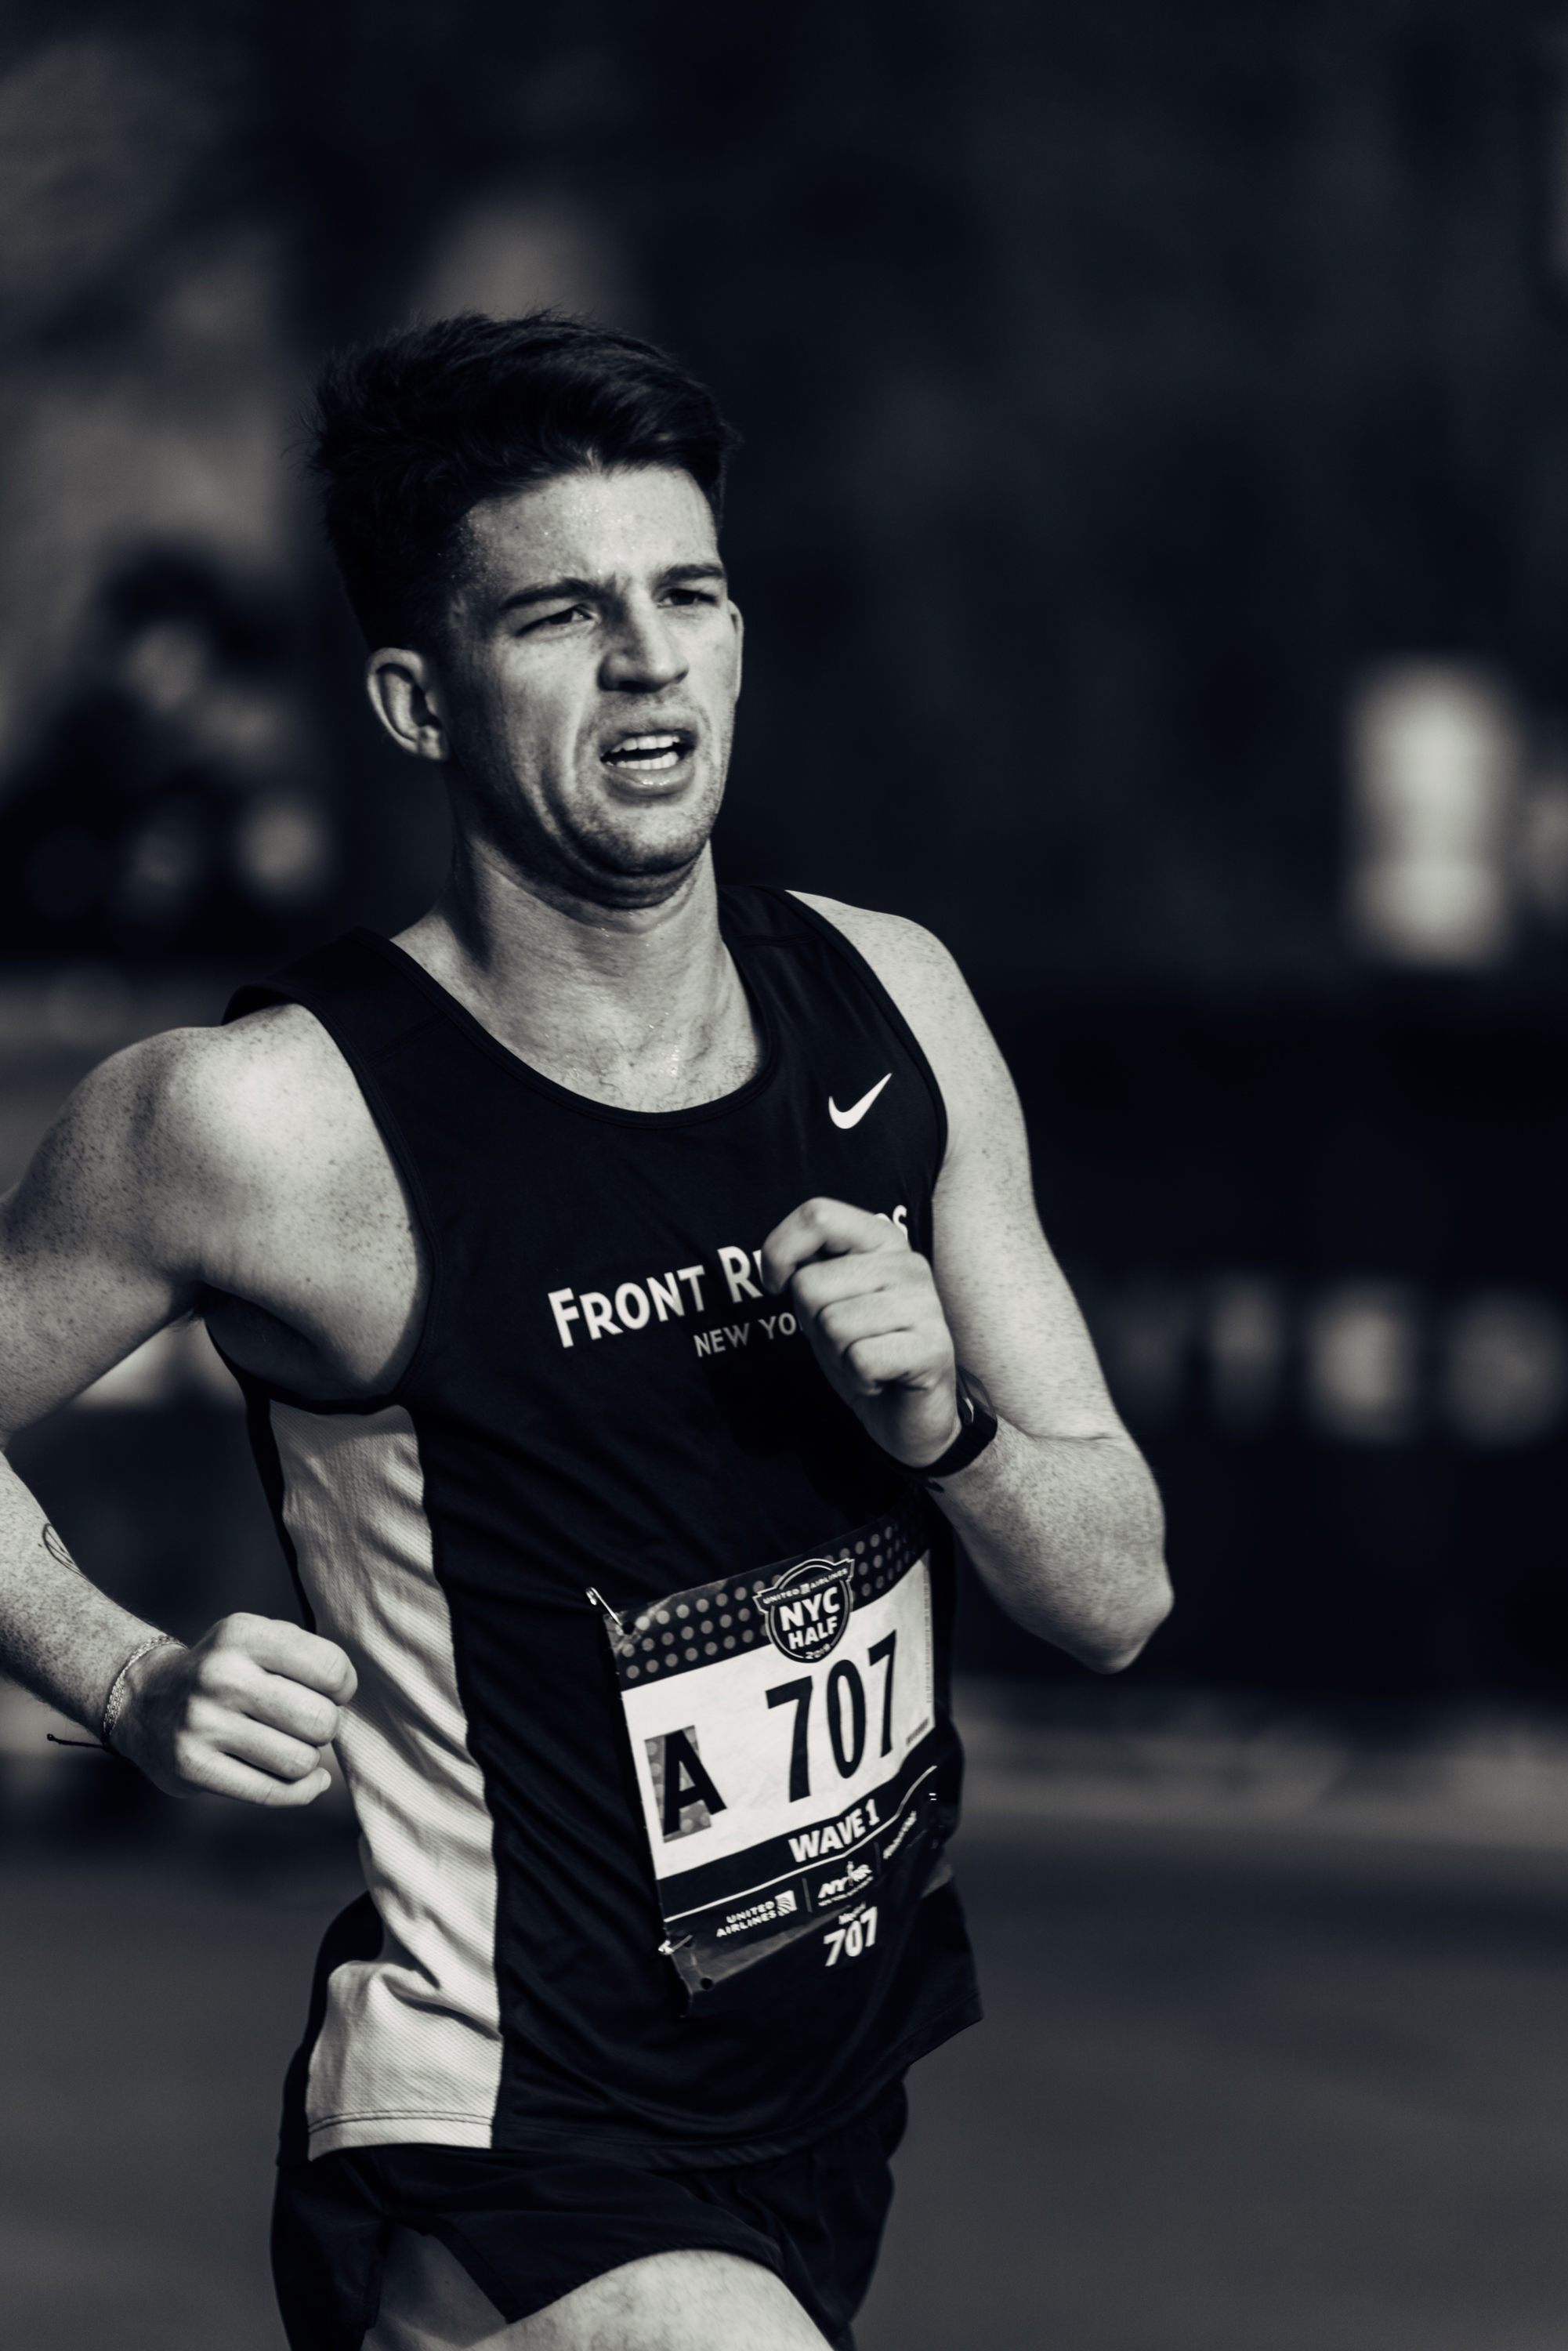 Photo Rhetoric - To Be Determined - United NYC Half Marathon-3017.jpg